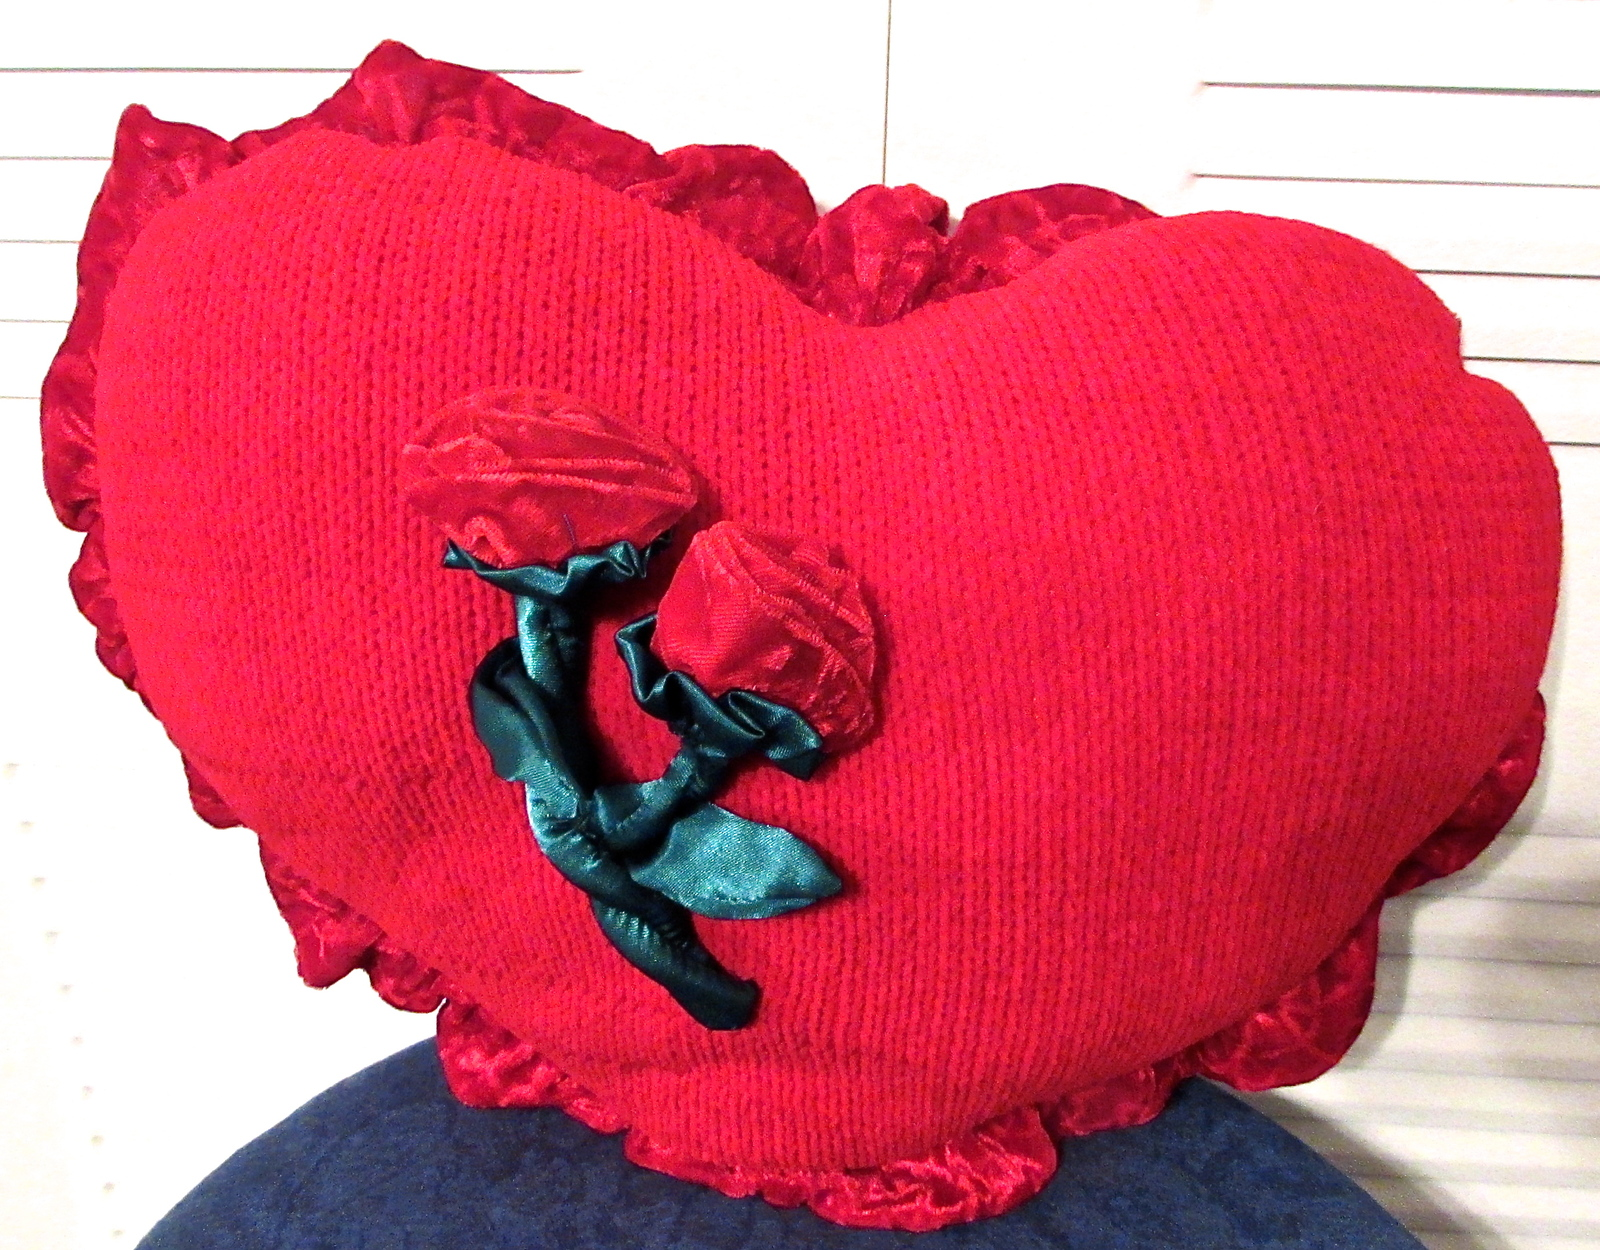 Red Heart Shaped Throw Pillow Knit/Polyester w/Velvet Trim Edges 2 Velvet Roses